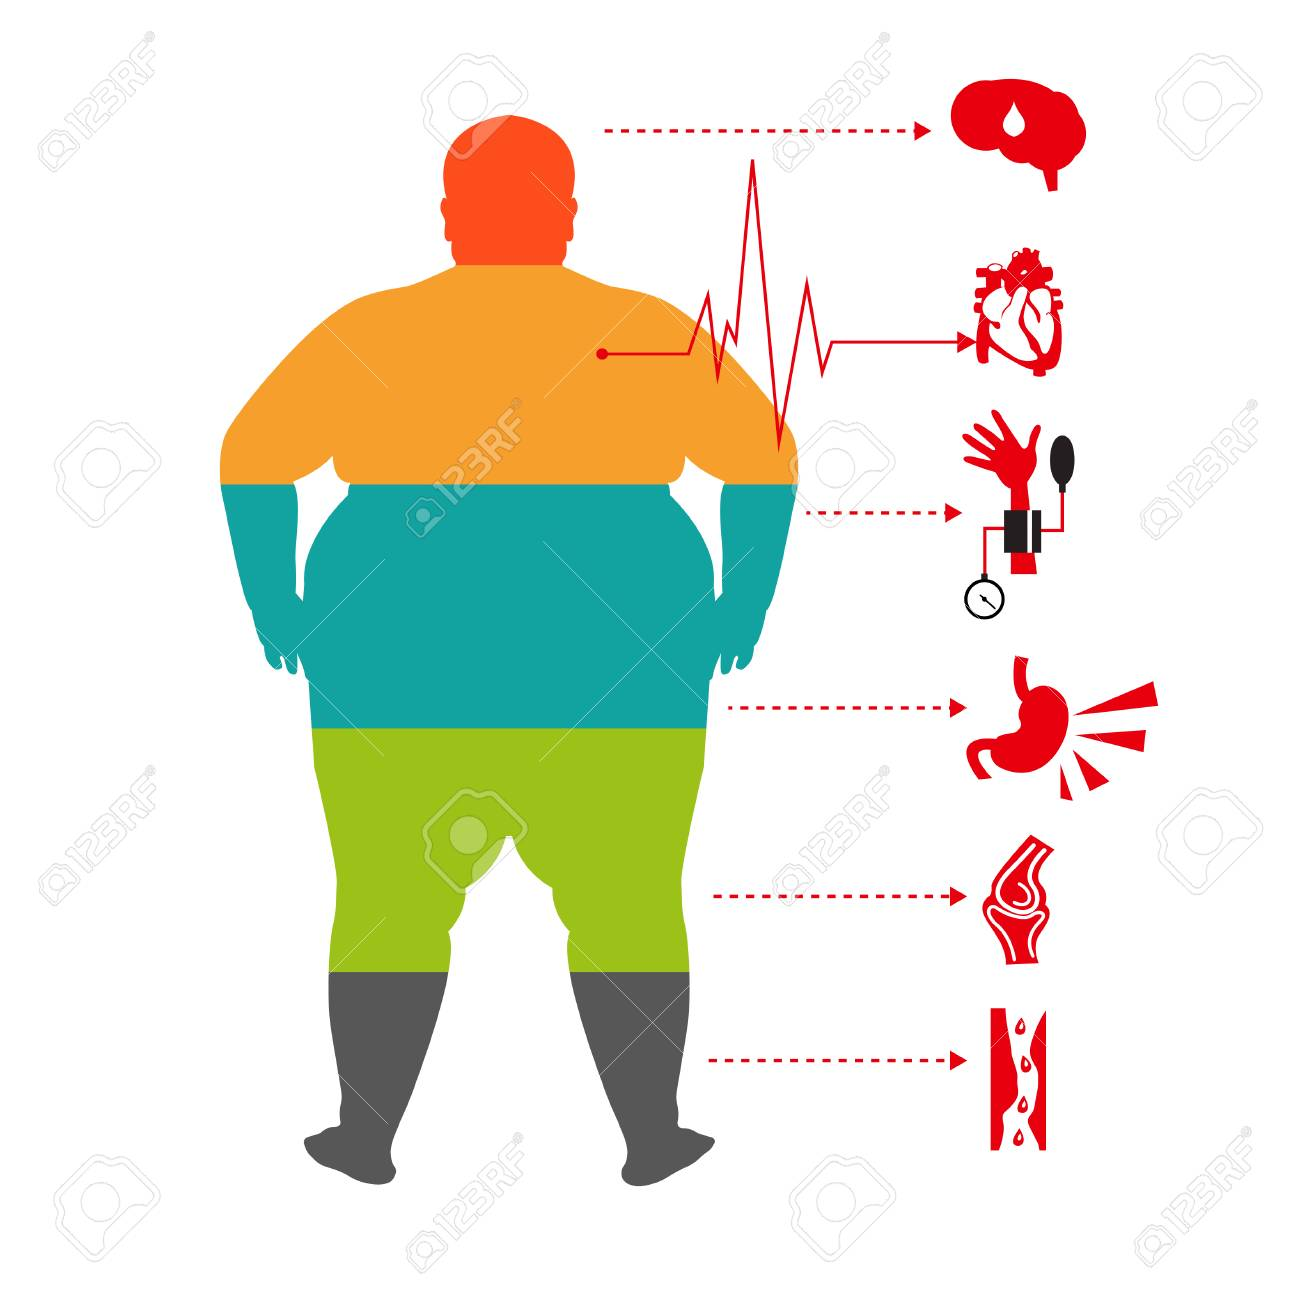 Obesity Related Diseases Man Health Info Graphic Fat And Health Royalty Free Cliparts Vectors And Stock Illustration Image 79506782